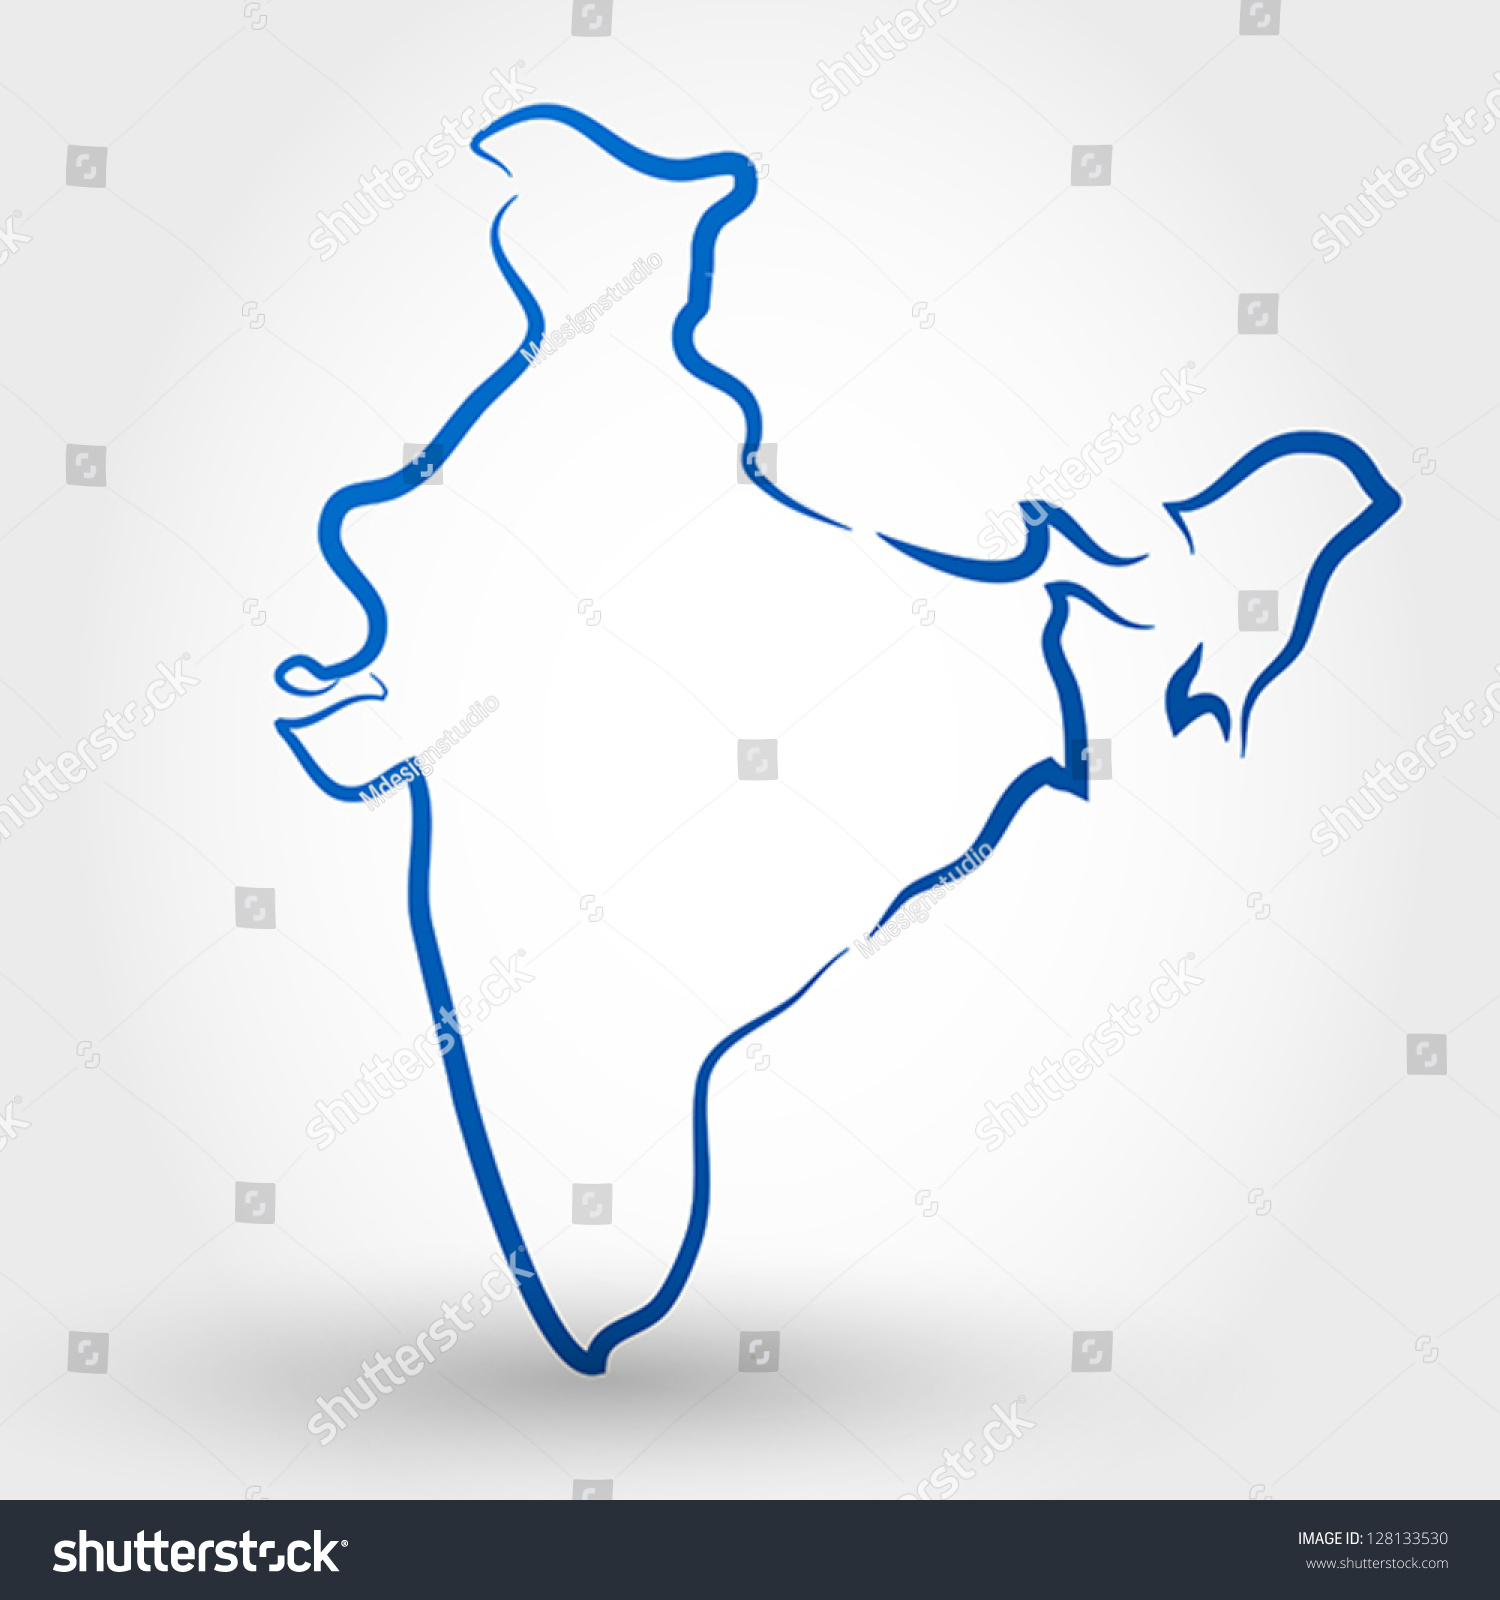 Map India Map Concept Stock Vector Shutterstock - India map vector